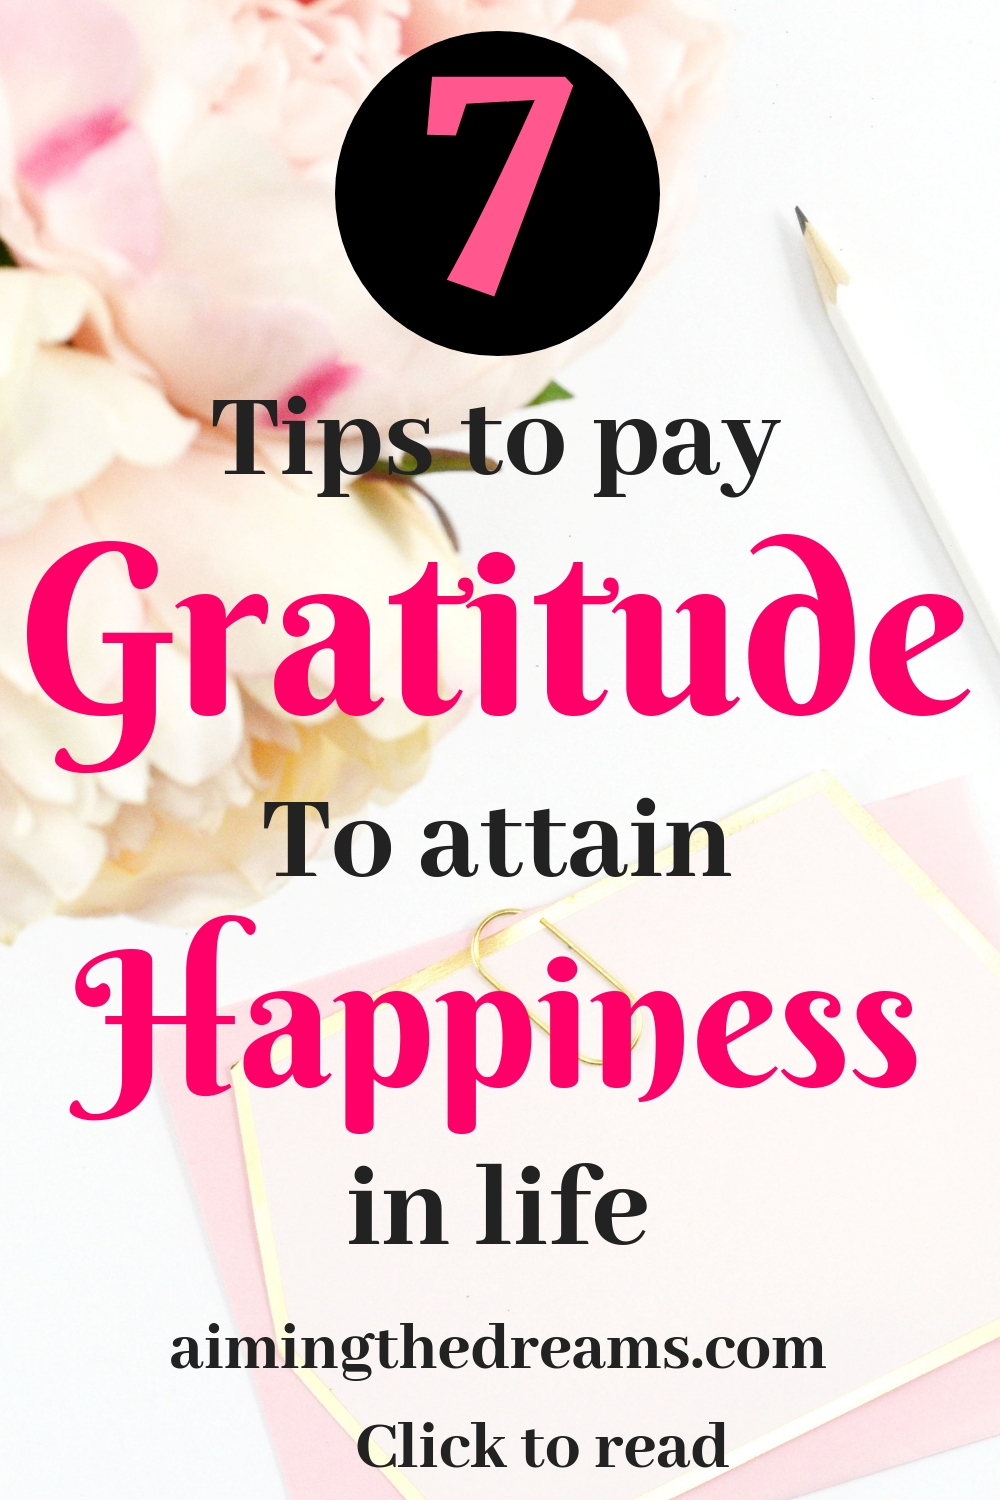 Practice gratitude to attain happiness and attract abundance in your life.